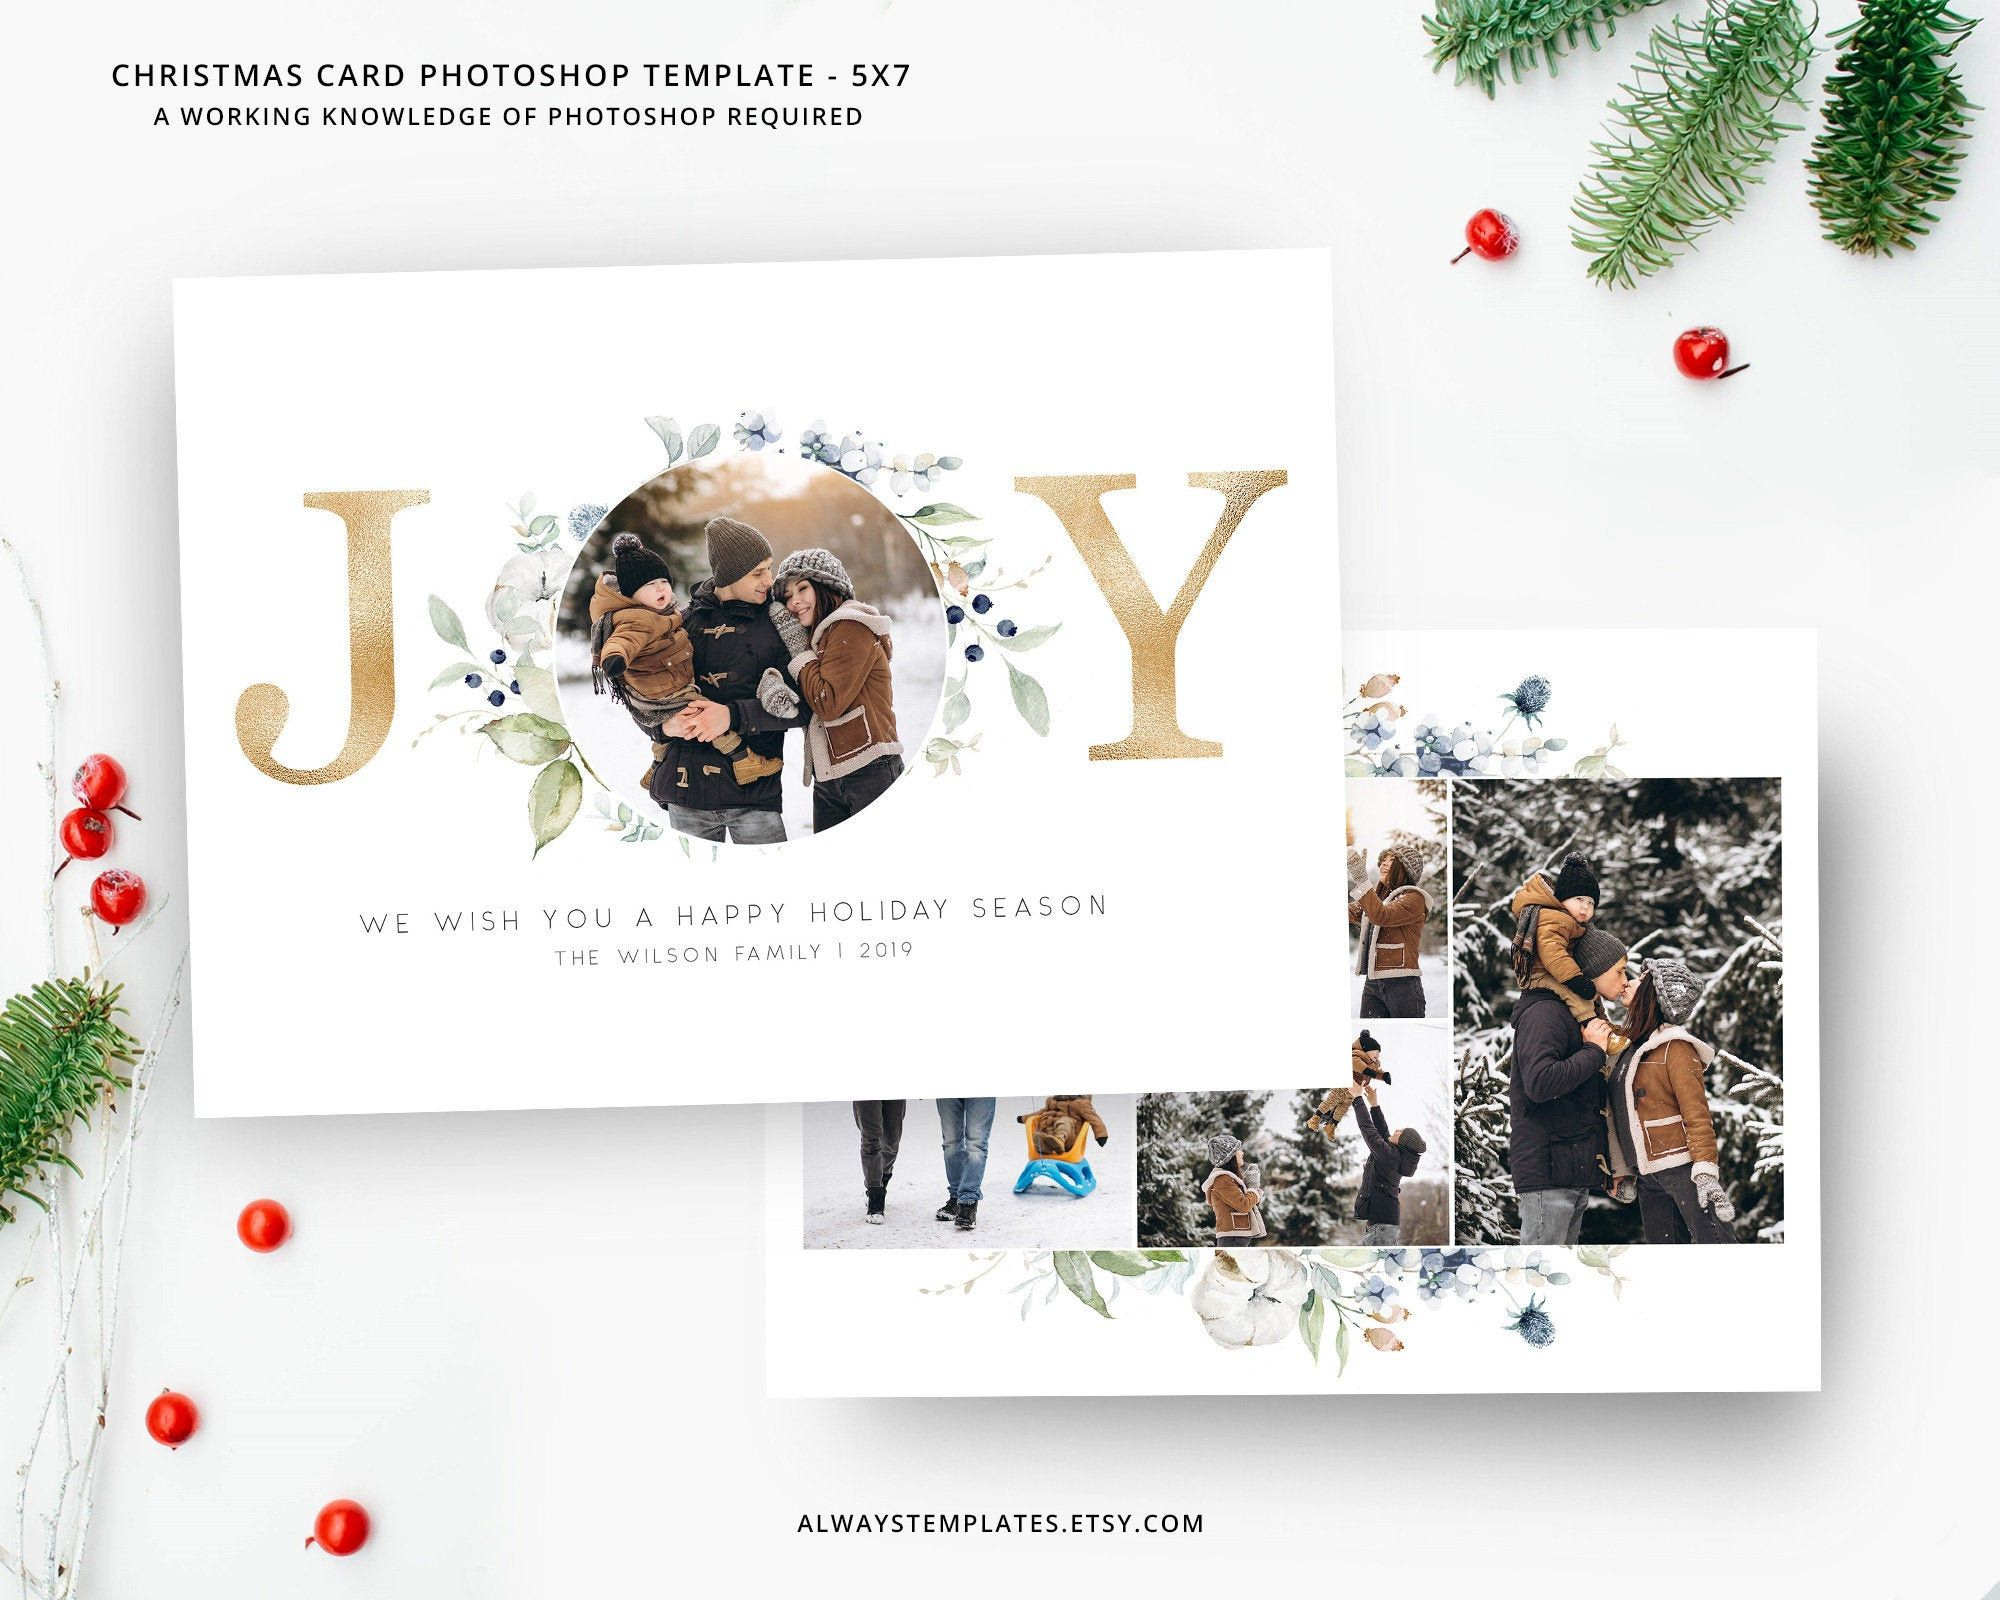 Joy Photo Christmas Card Template Christmas Card Template Etsy Christmas Photo Card Template Holiday Card Template Photoshop Christmas Card Template